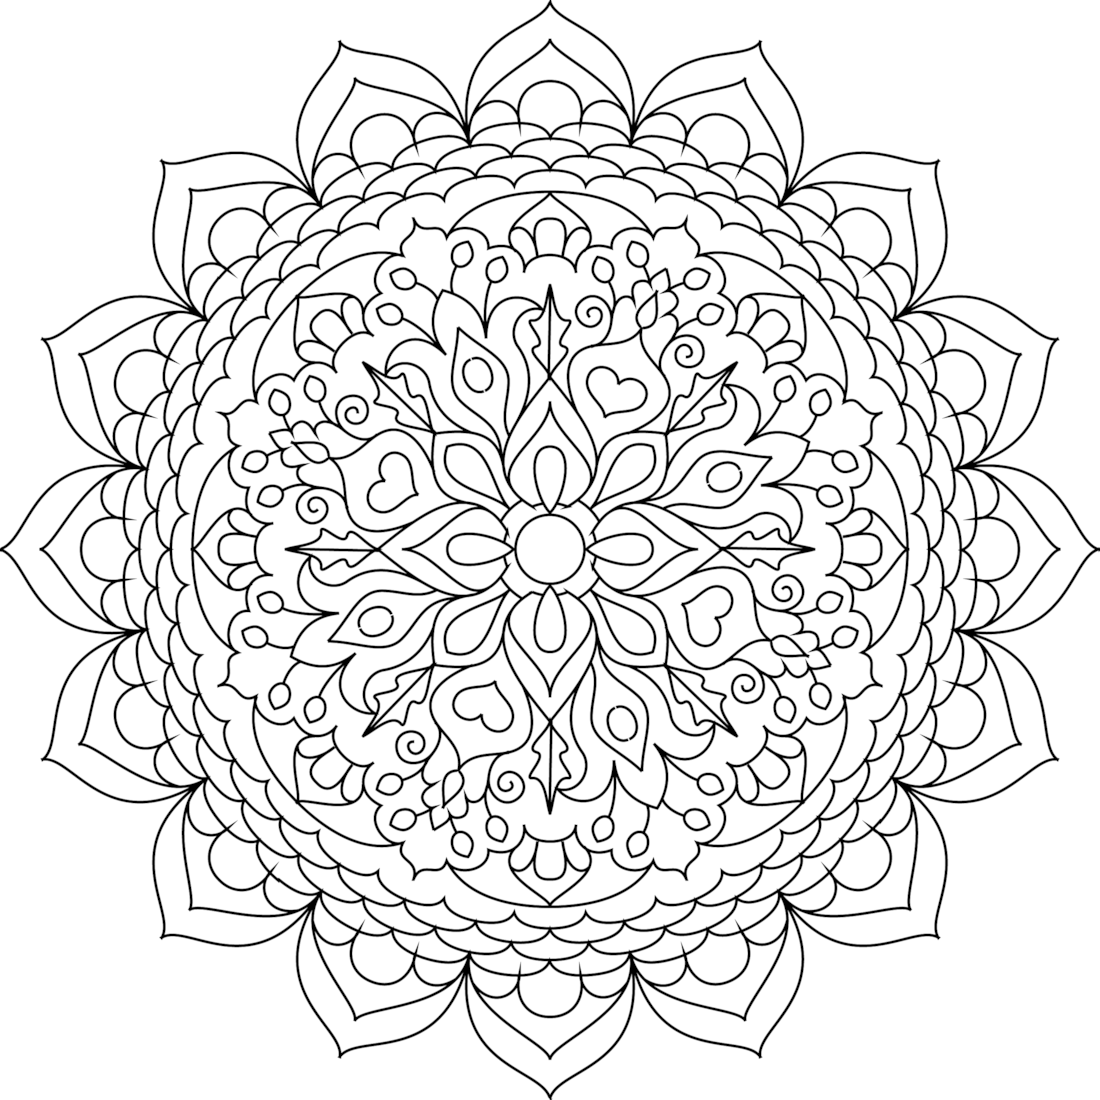 Cheerful Oasis Coloring Page